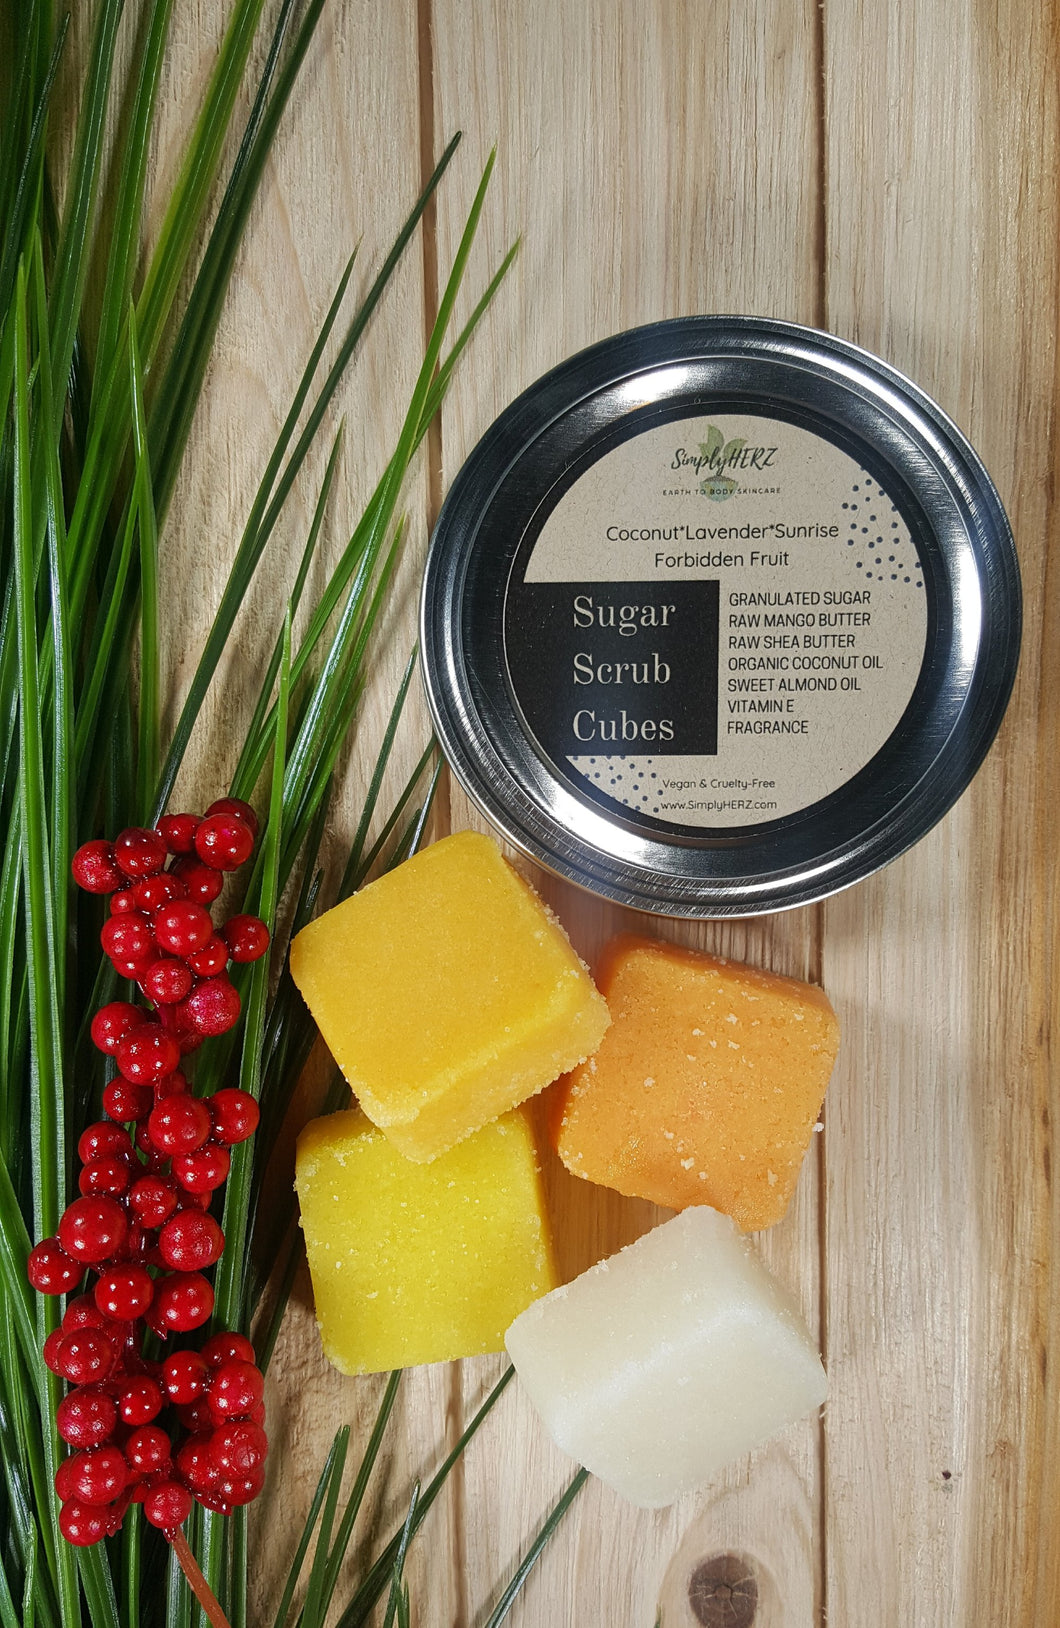 Simply Herz Forbidden Fruit Sugar Scrub Cube